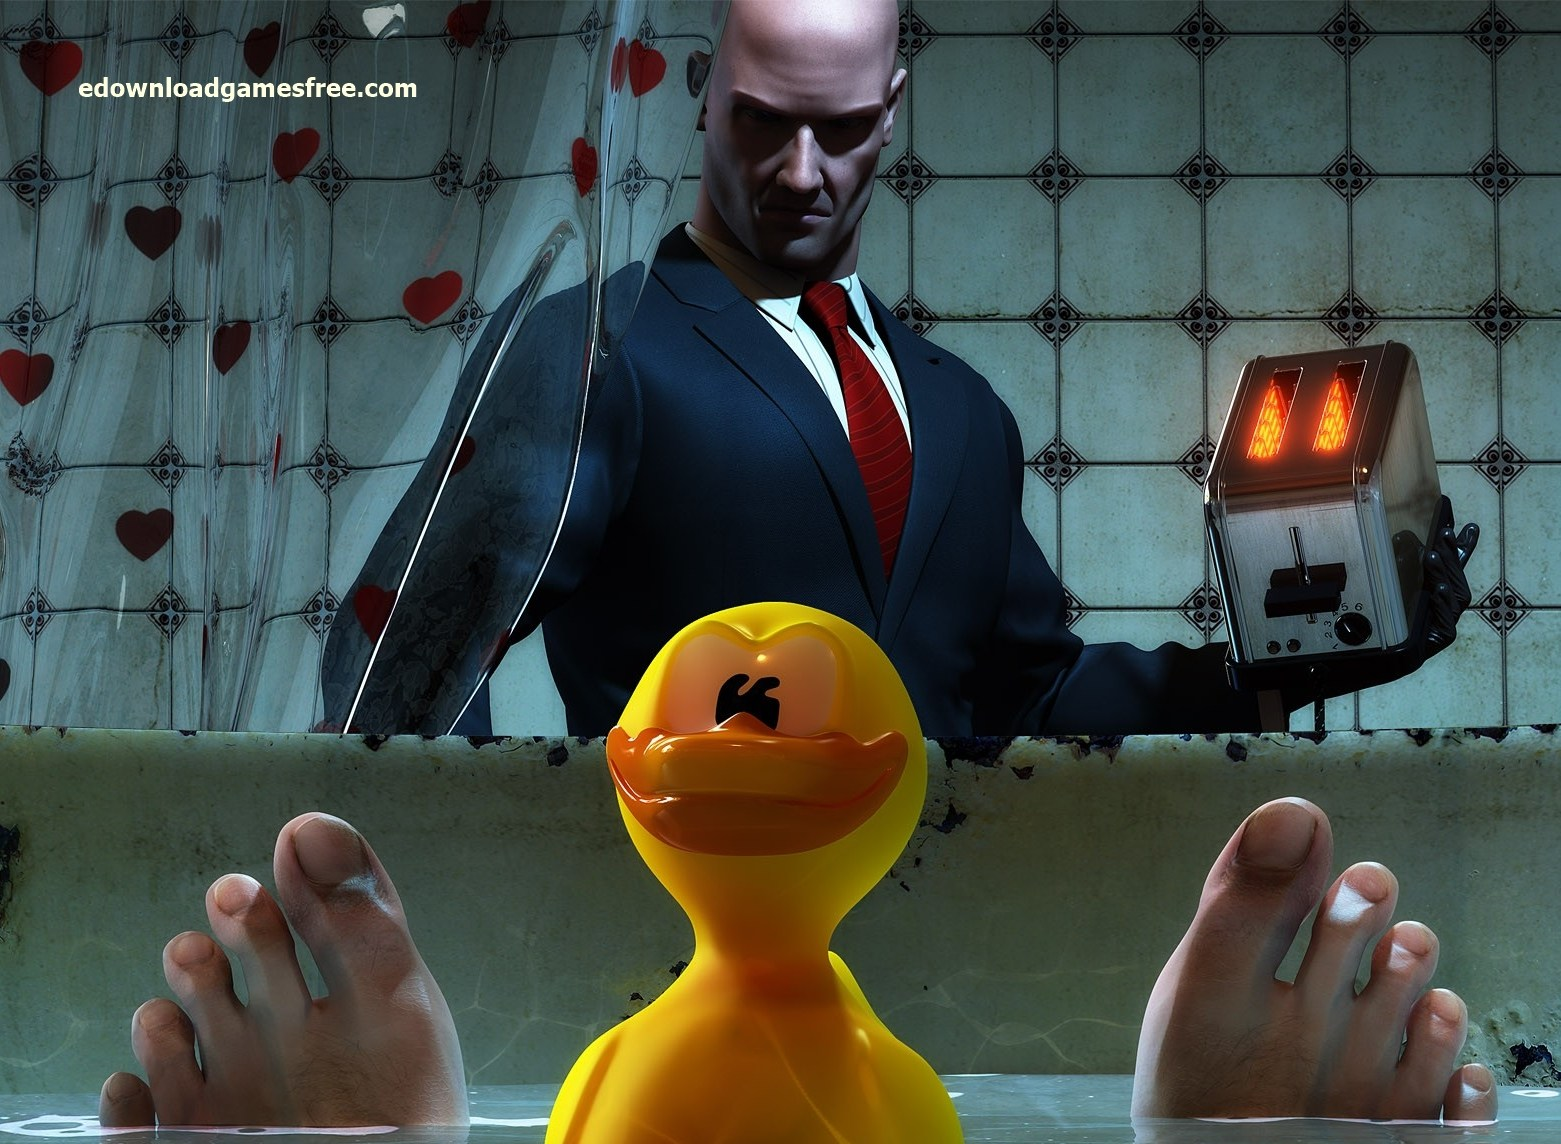 تحميل لعبة hitman absolution بحجم 4 جيجا